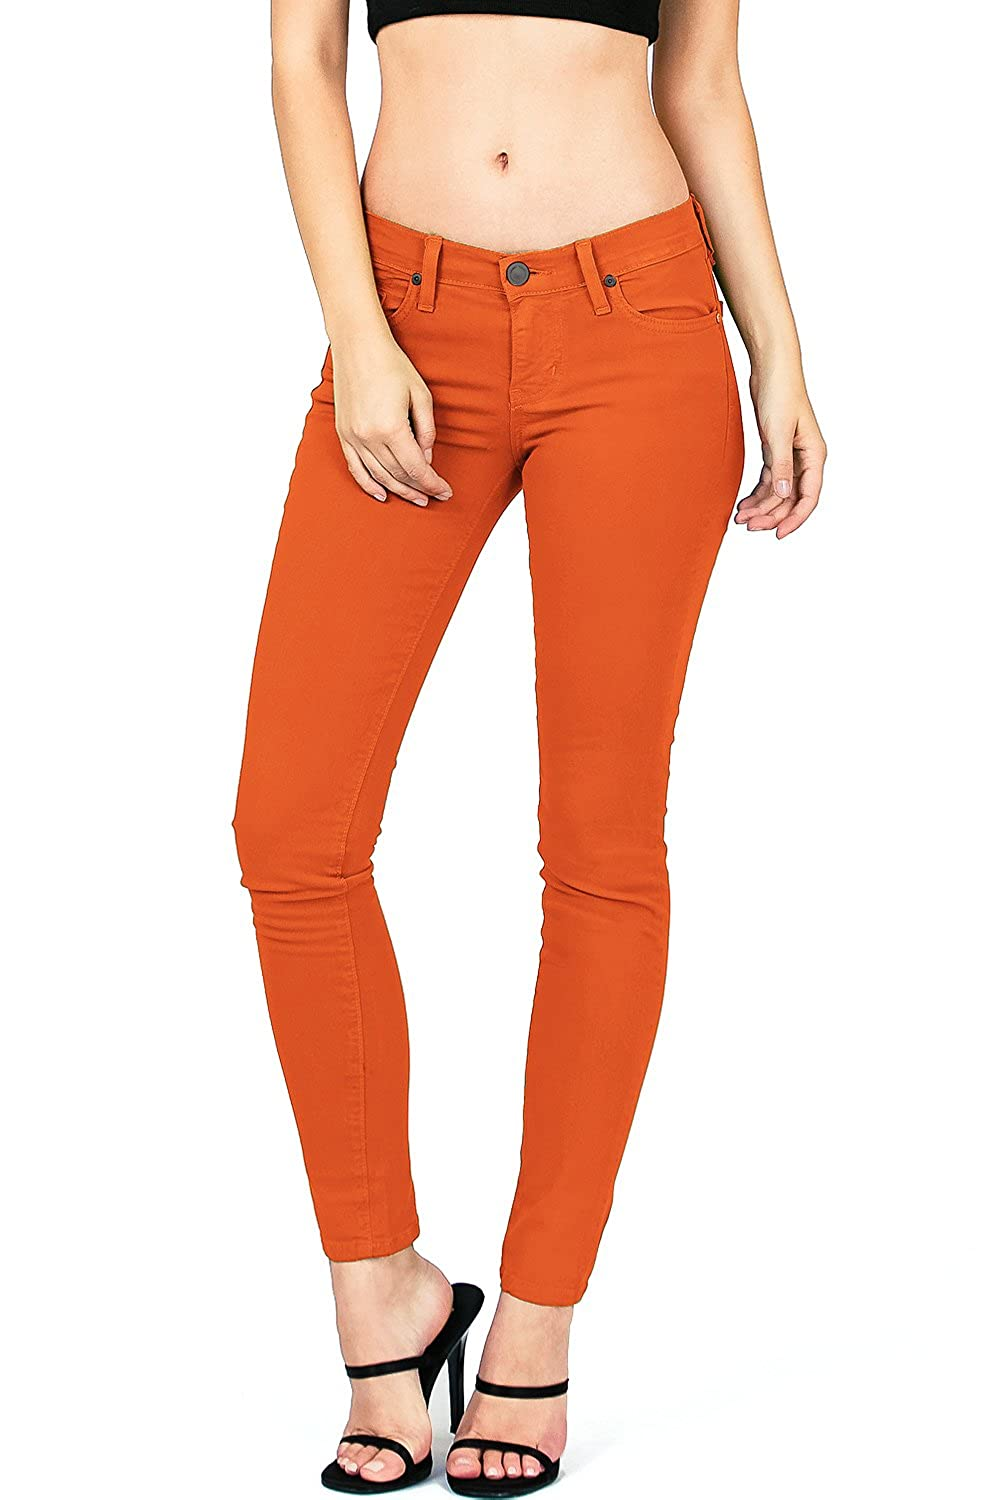 orange Angry Rabbit by Pink Ice Women's Juniors Mid Waist Skinny colord Jeans